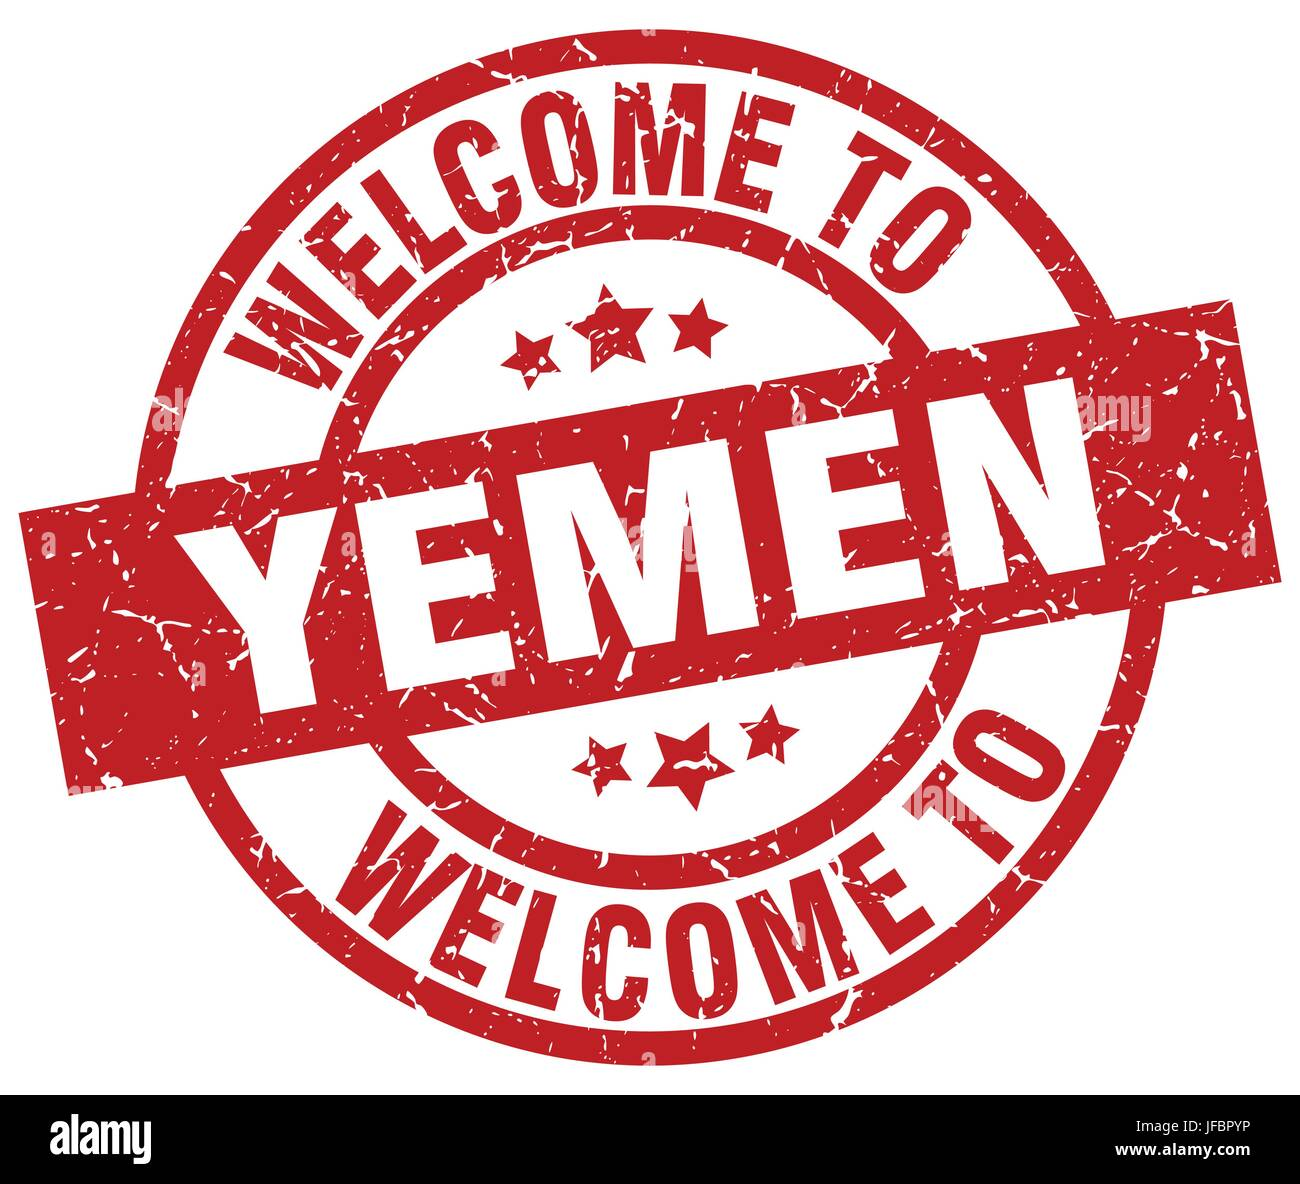 welcome to Yemen red stamp - Stock Vector